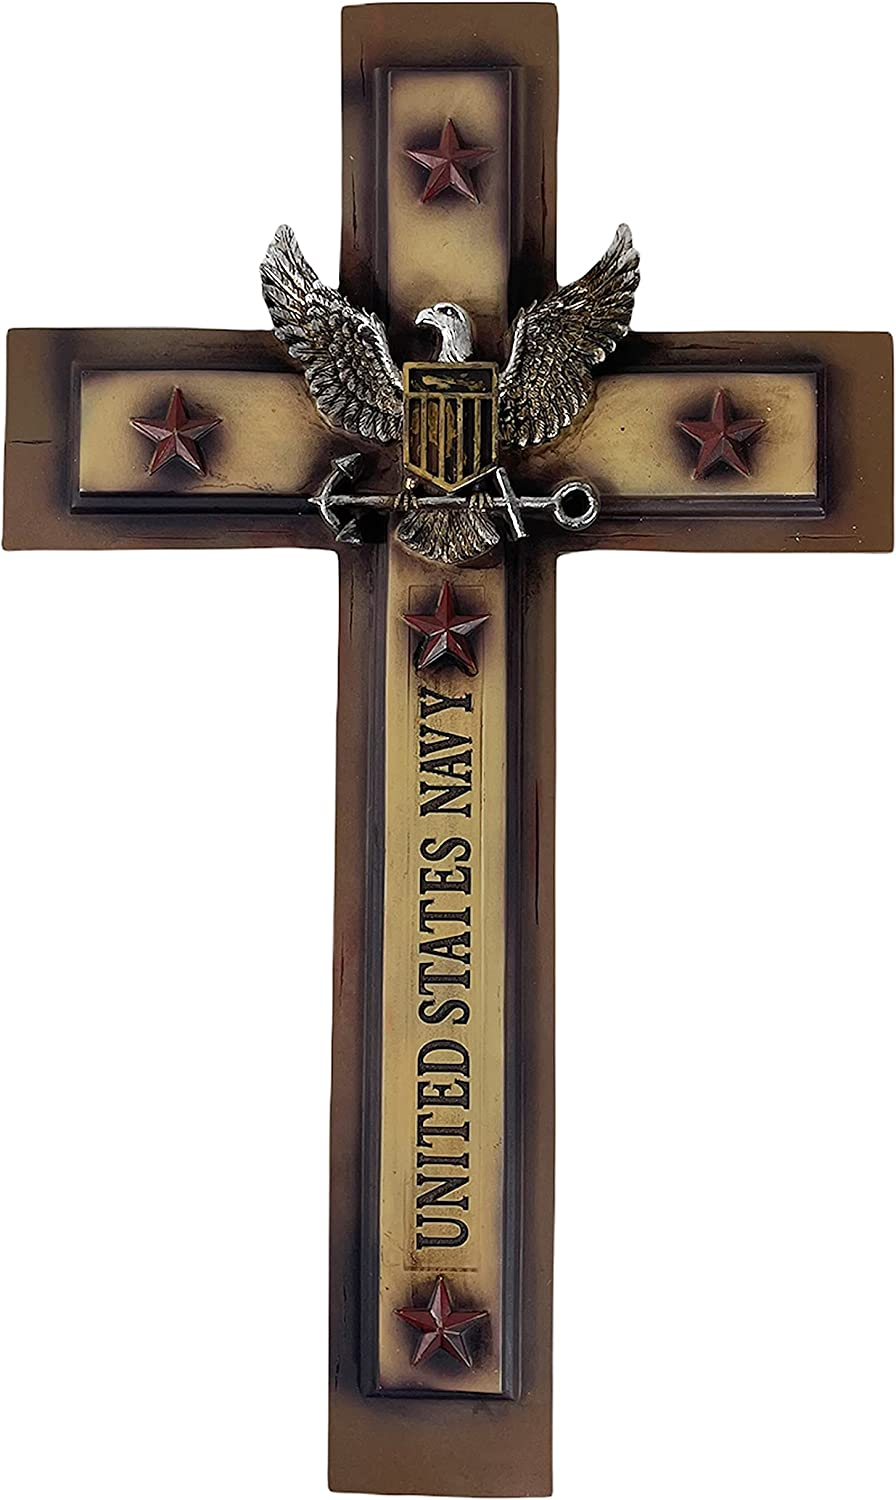 Urbalabs United States US Navy Distressed Armed Forces 20 Inch Wall Hanging Wall Cross Decor American Flag Military Home Stars Stripes Support Our Troops Deployment Gifts (Navy 20 Inch)